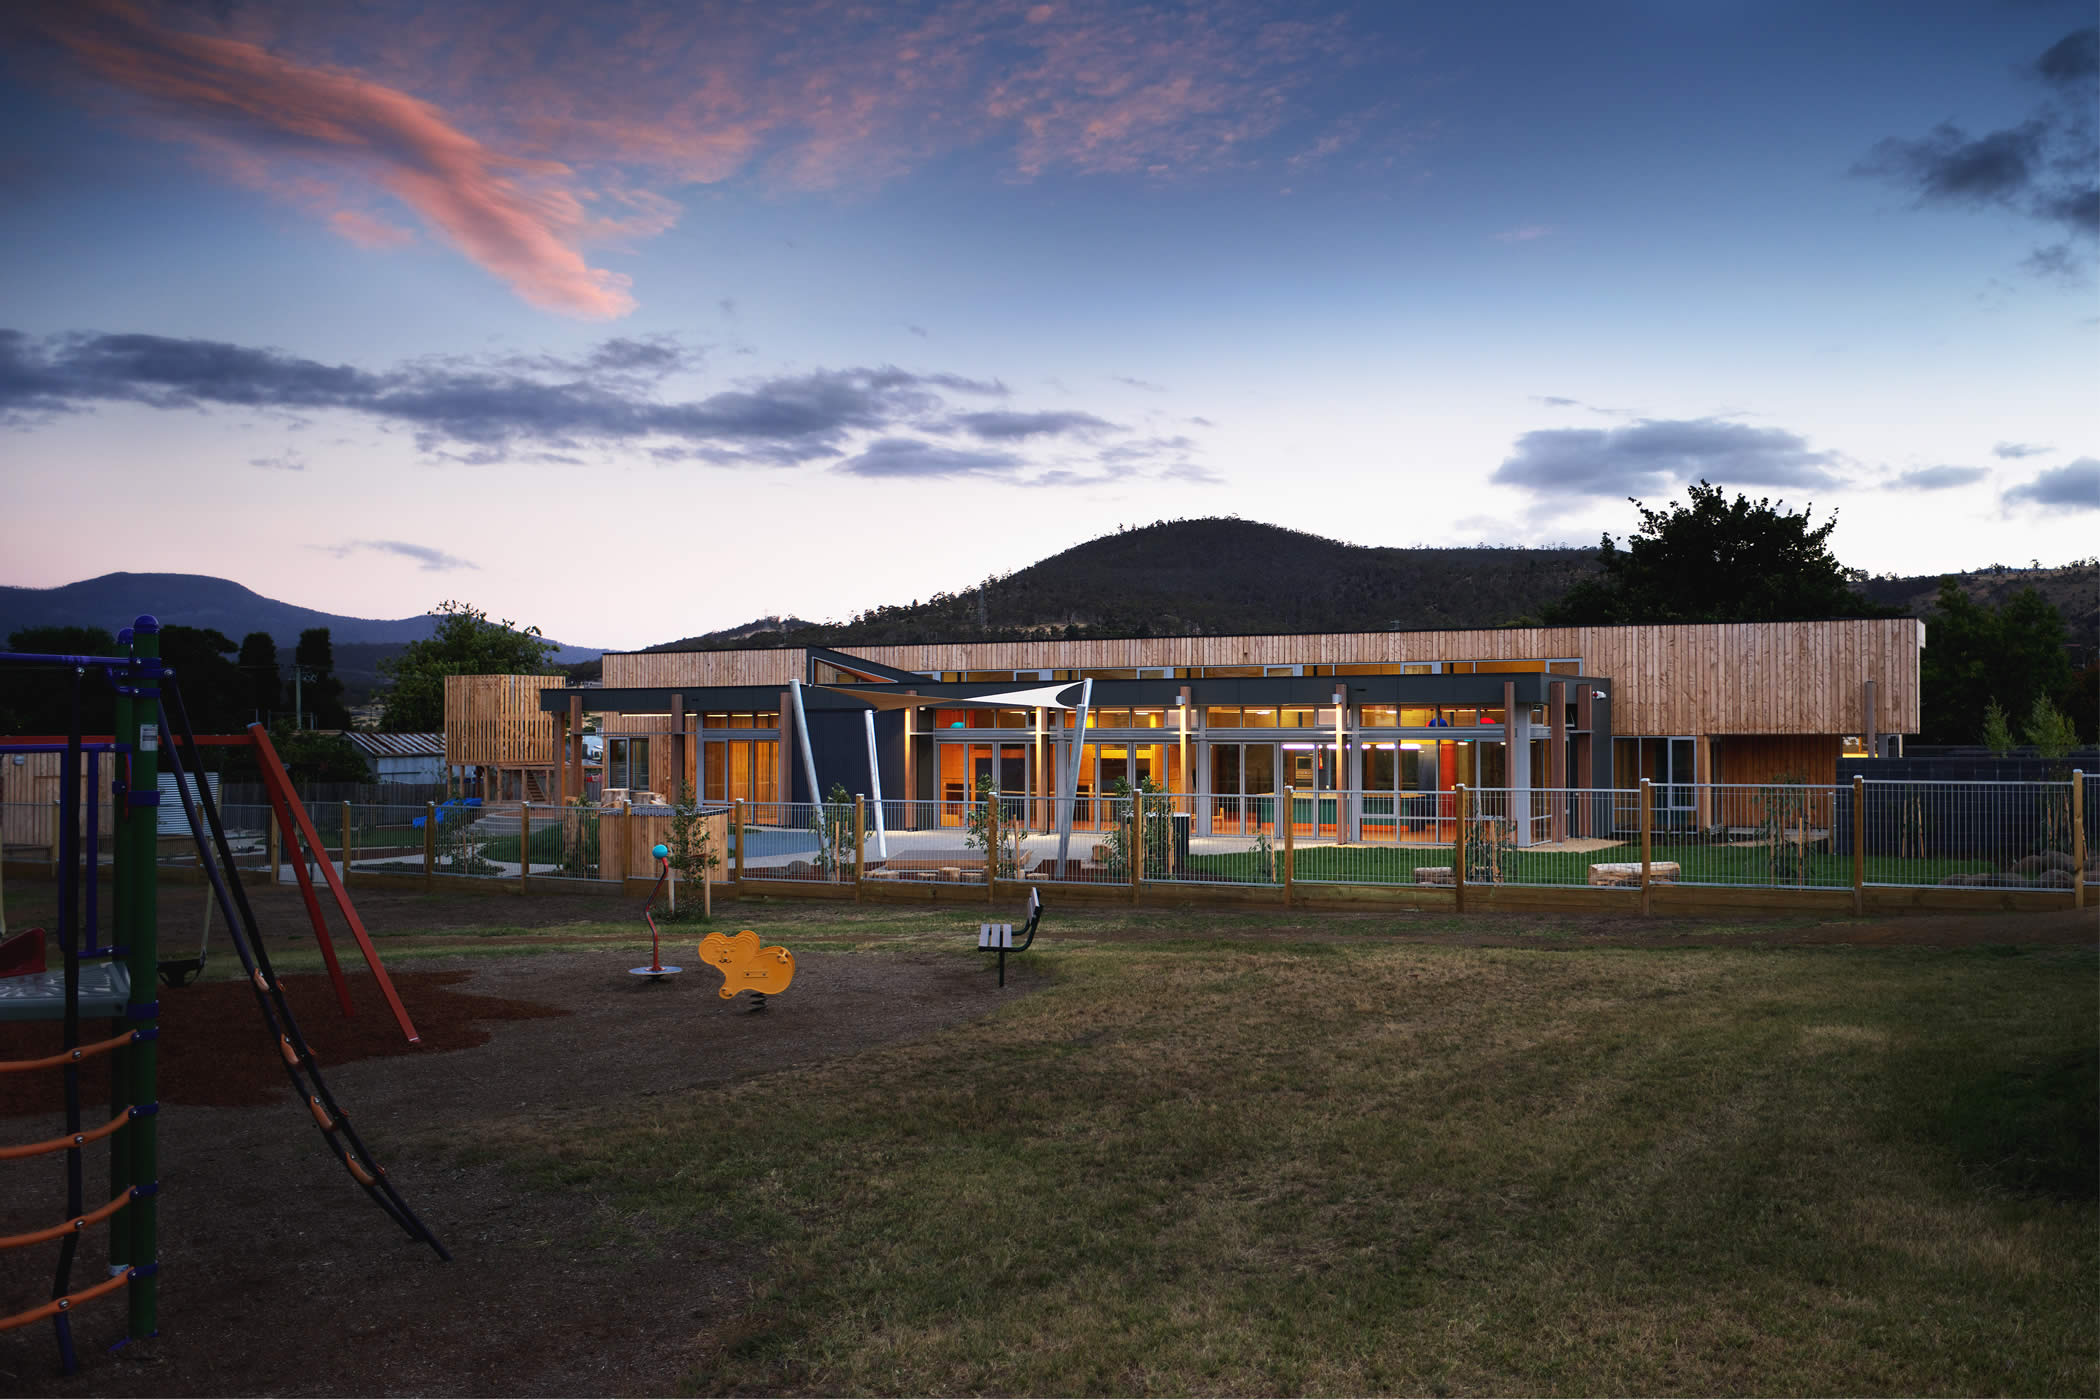 Ptunarra Child and Family Centre, New Norfolk, Tasmania: Passive solar design opens to and brings warm northern light in with passive surveillance, improved safety and use of the adjacent park forging social renewal in the area. Photo by Ray Joyce.